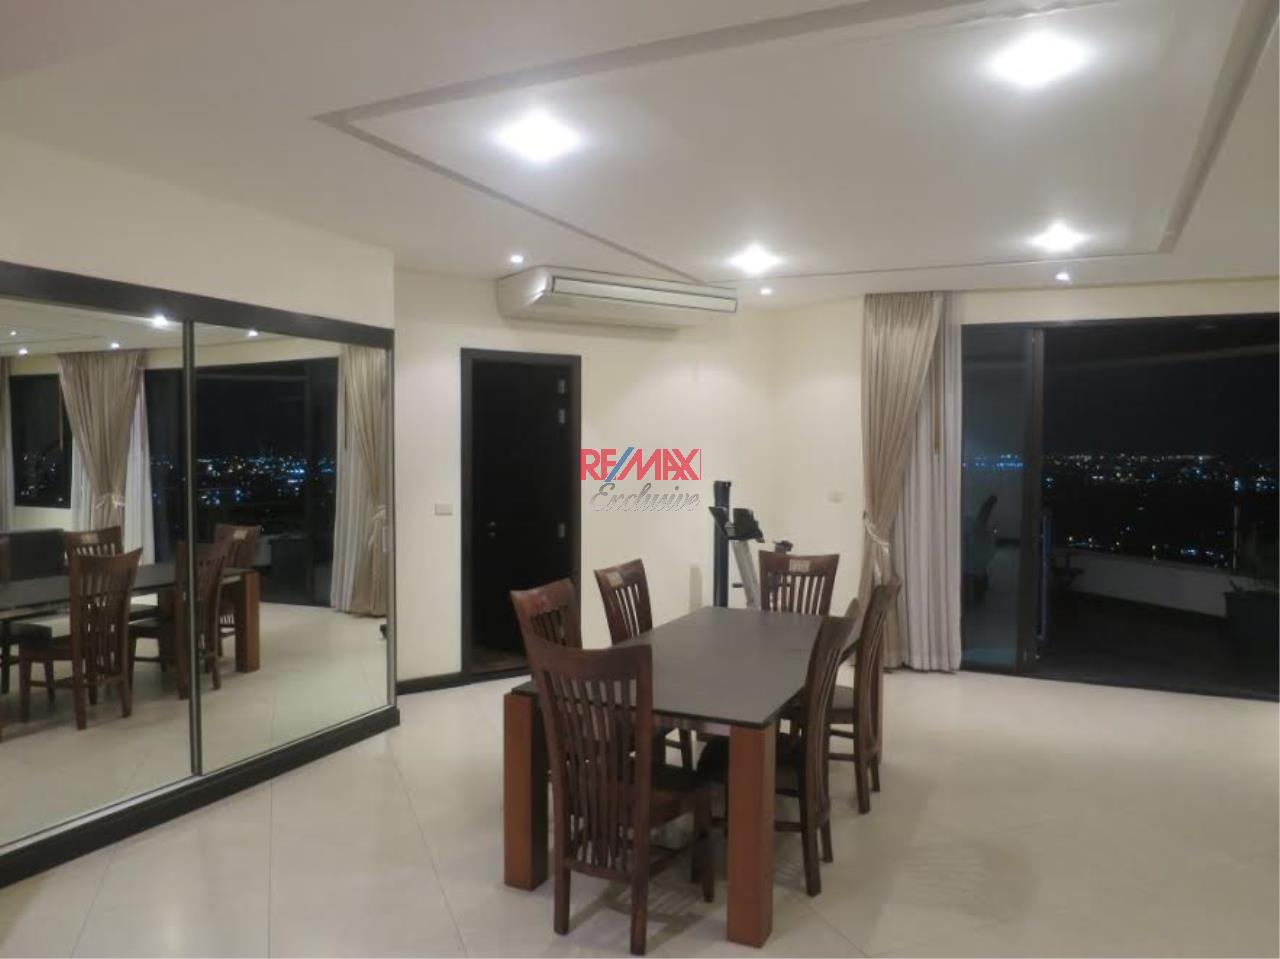 RE/MAX Exclusive Agency's Royal River Place Condo, 3 Bedrooms, 3 Bathrooms, Only For Sale 20,000,000 THB 4